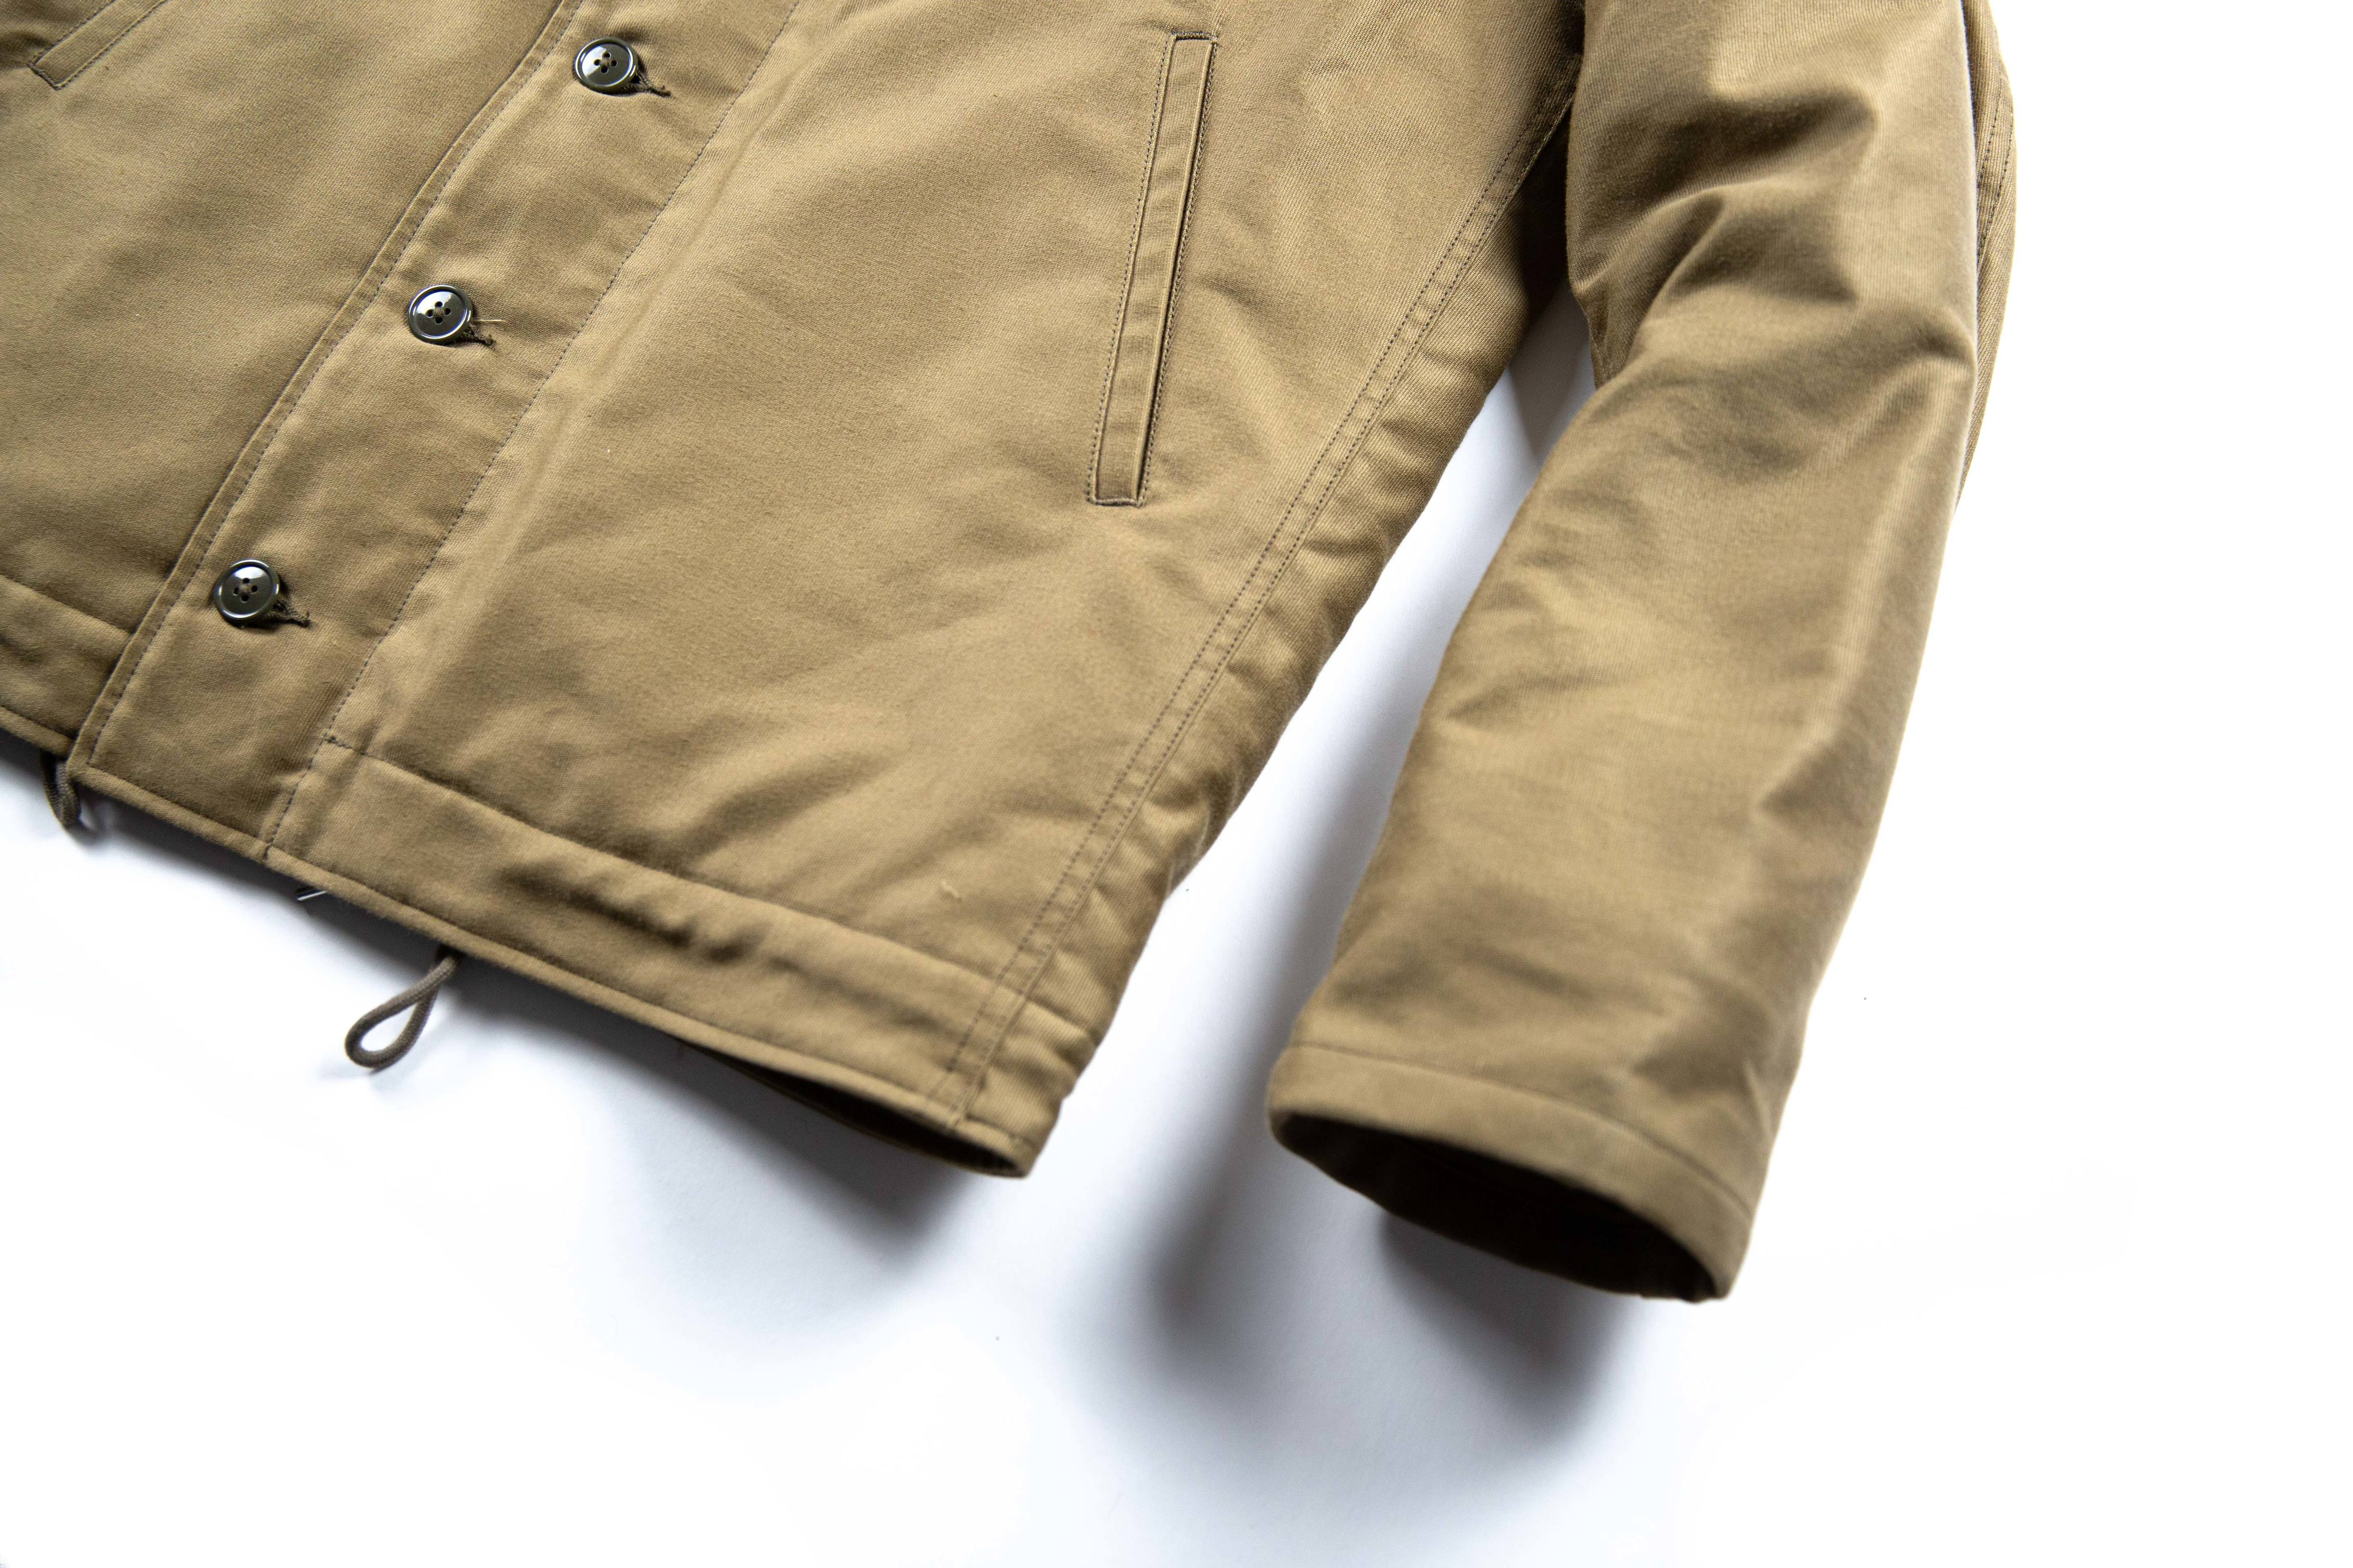 An Ode to The N-1 Deck Jacket